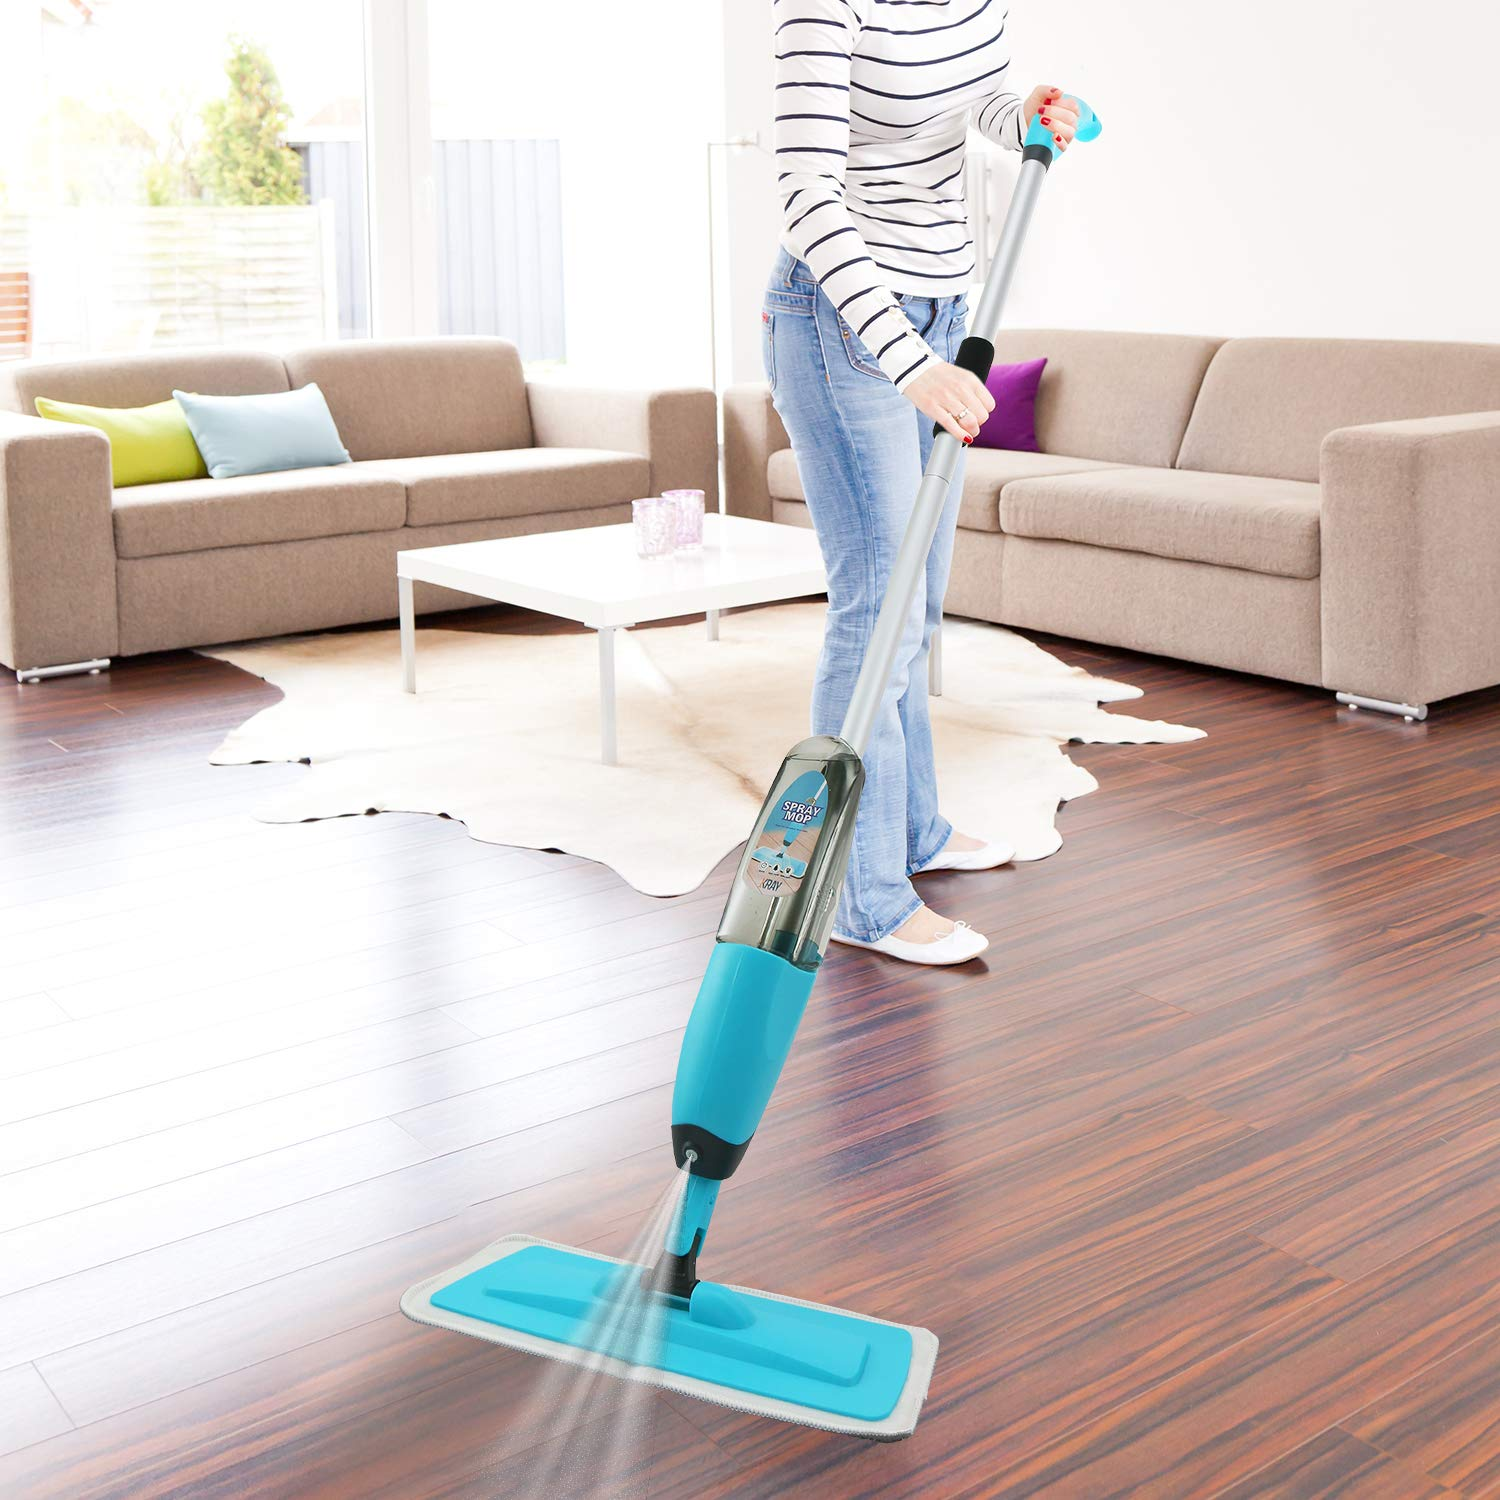 Spray Mop Strongest Heaviest Duty Mop - Best Floor Mop Easy To Use - 360 Spin Non Scratch Microfiber Mop With Integrated Sprayer - Includes Refillable 700ml Bottle & 2 Reusable Microfiber Pads by Kray by Kray (Image #7)